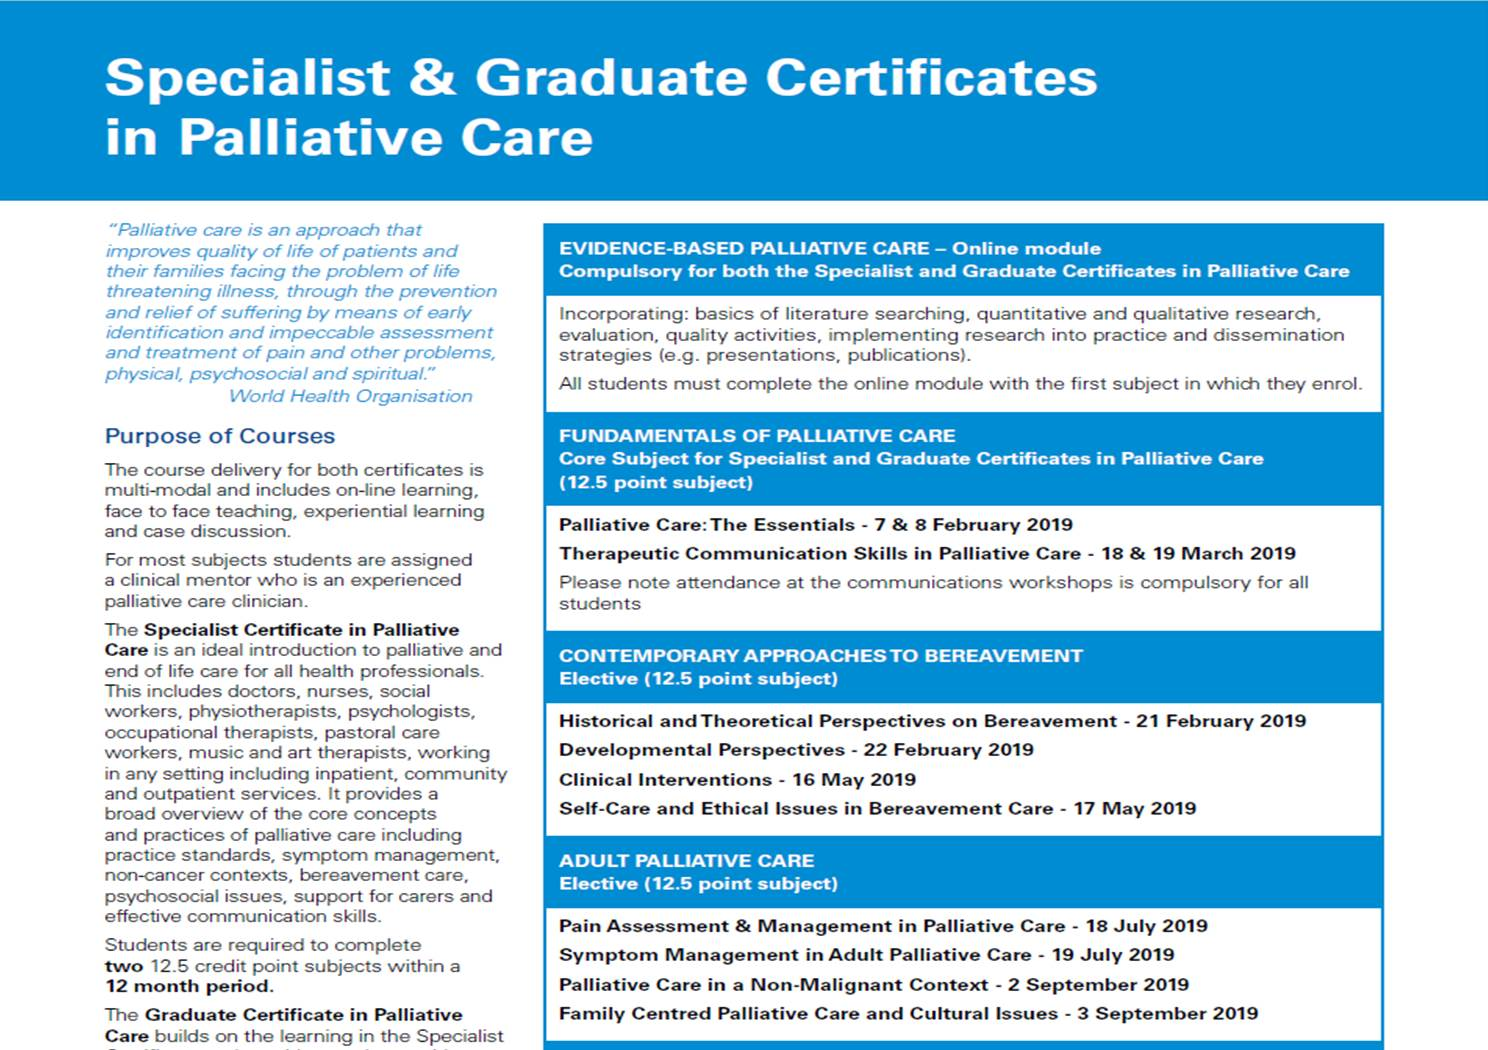 The Centre For Palliative Care Specialist Certificate